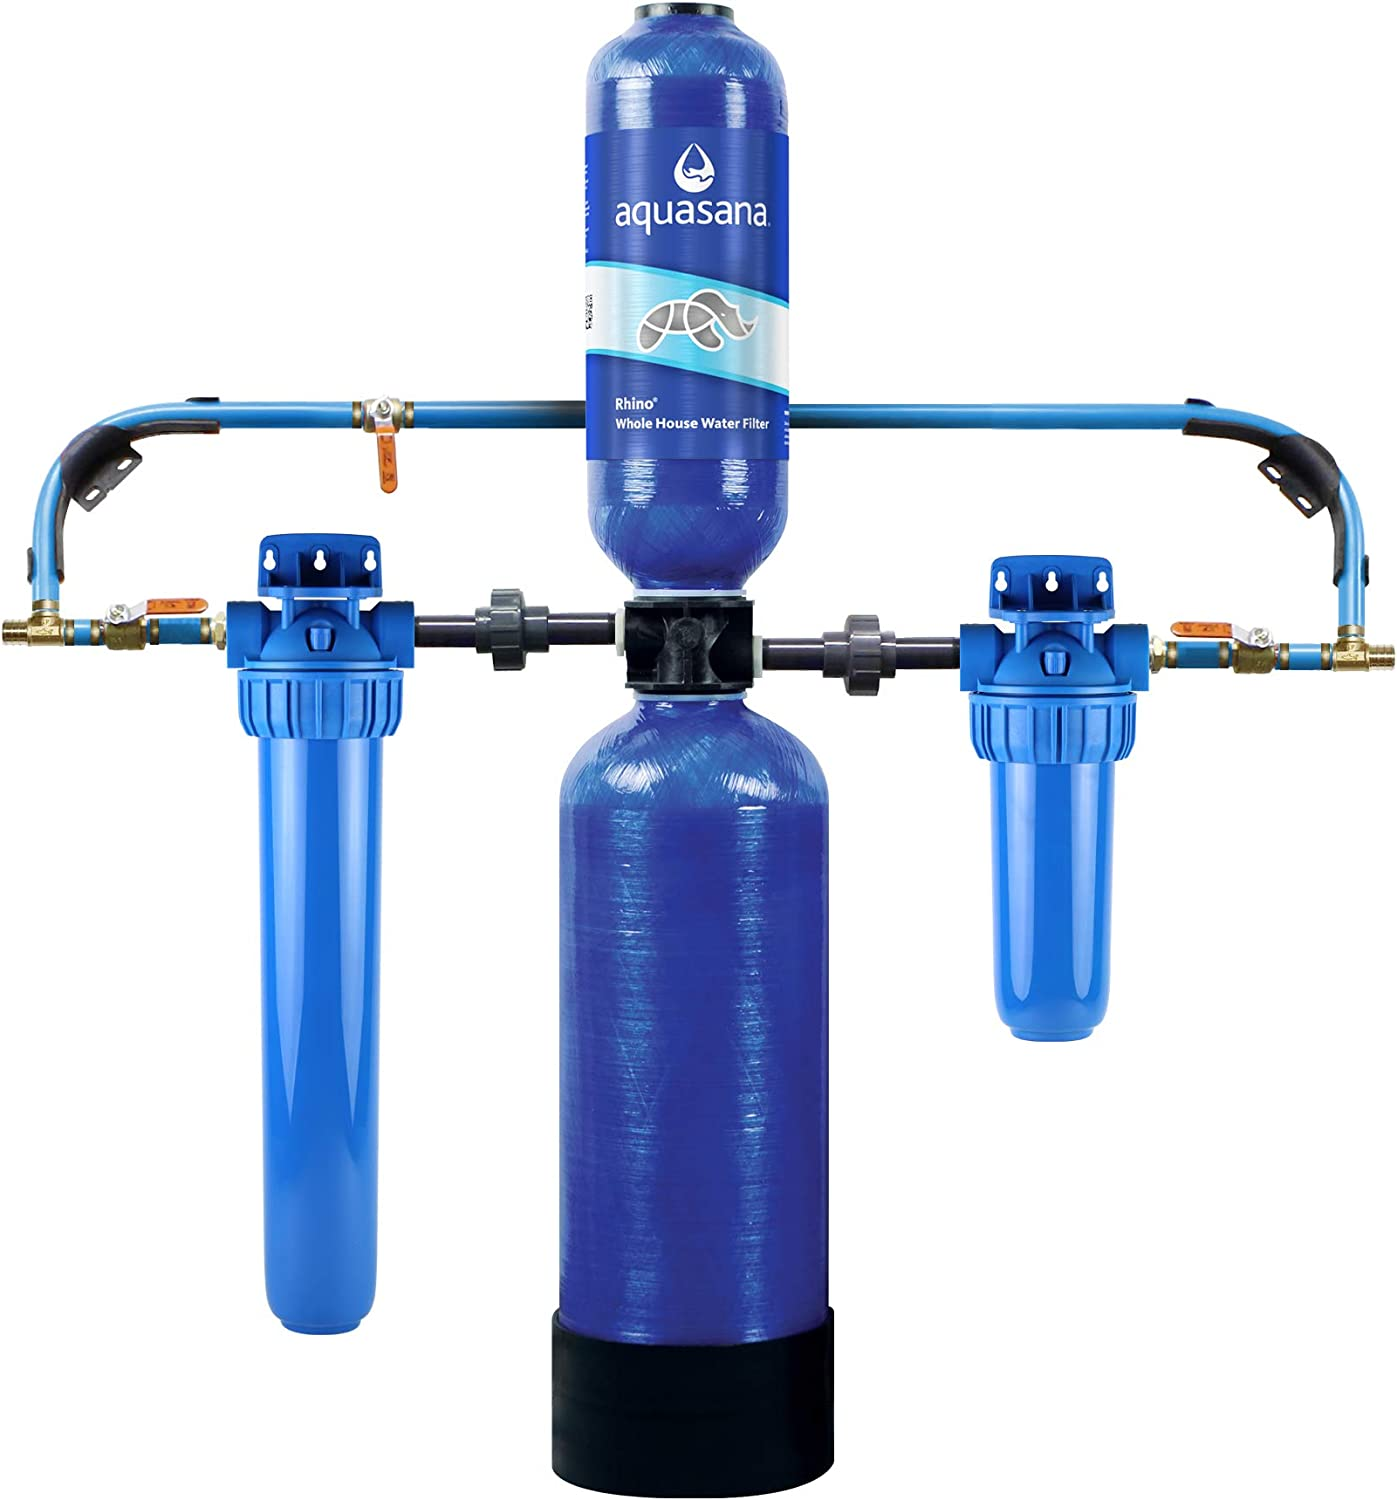 Aquasana Whole House Water Filter System Filters Sediment 97 Of Chlorine Carbon Kdf Home Water Filtration Eq 1000 10 Yr 1 Million Gl Amazon Com